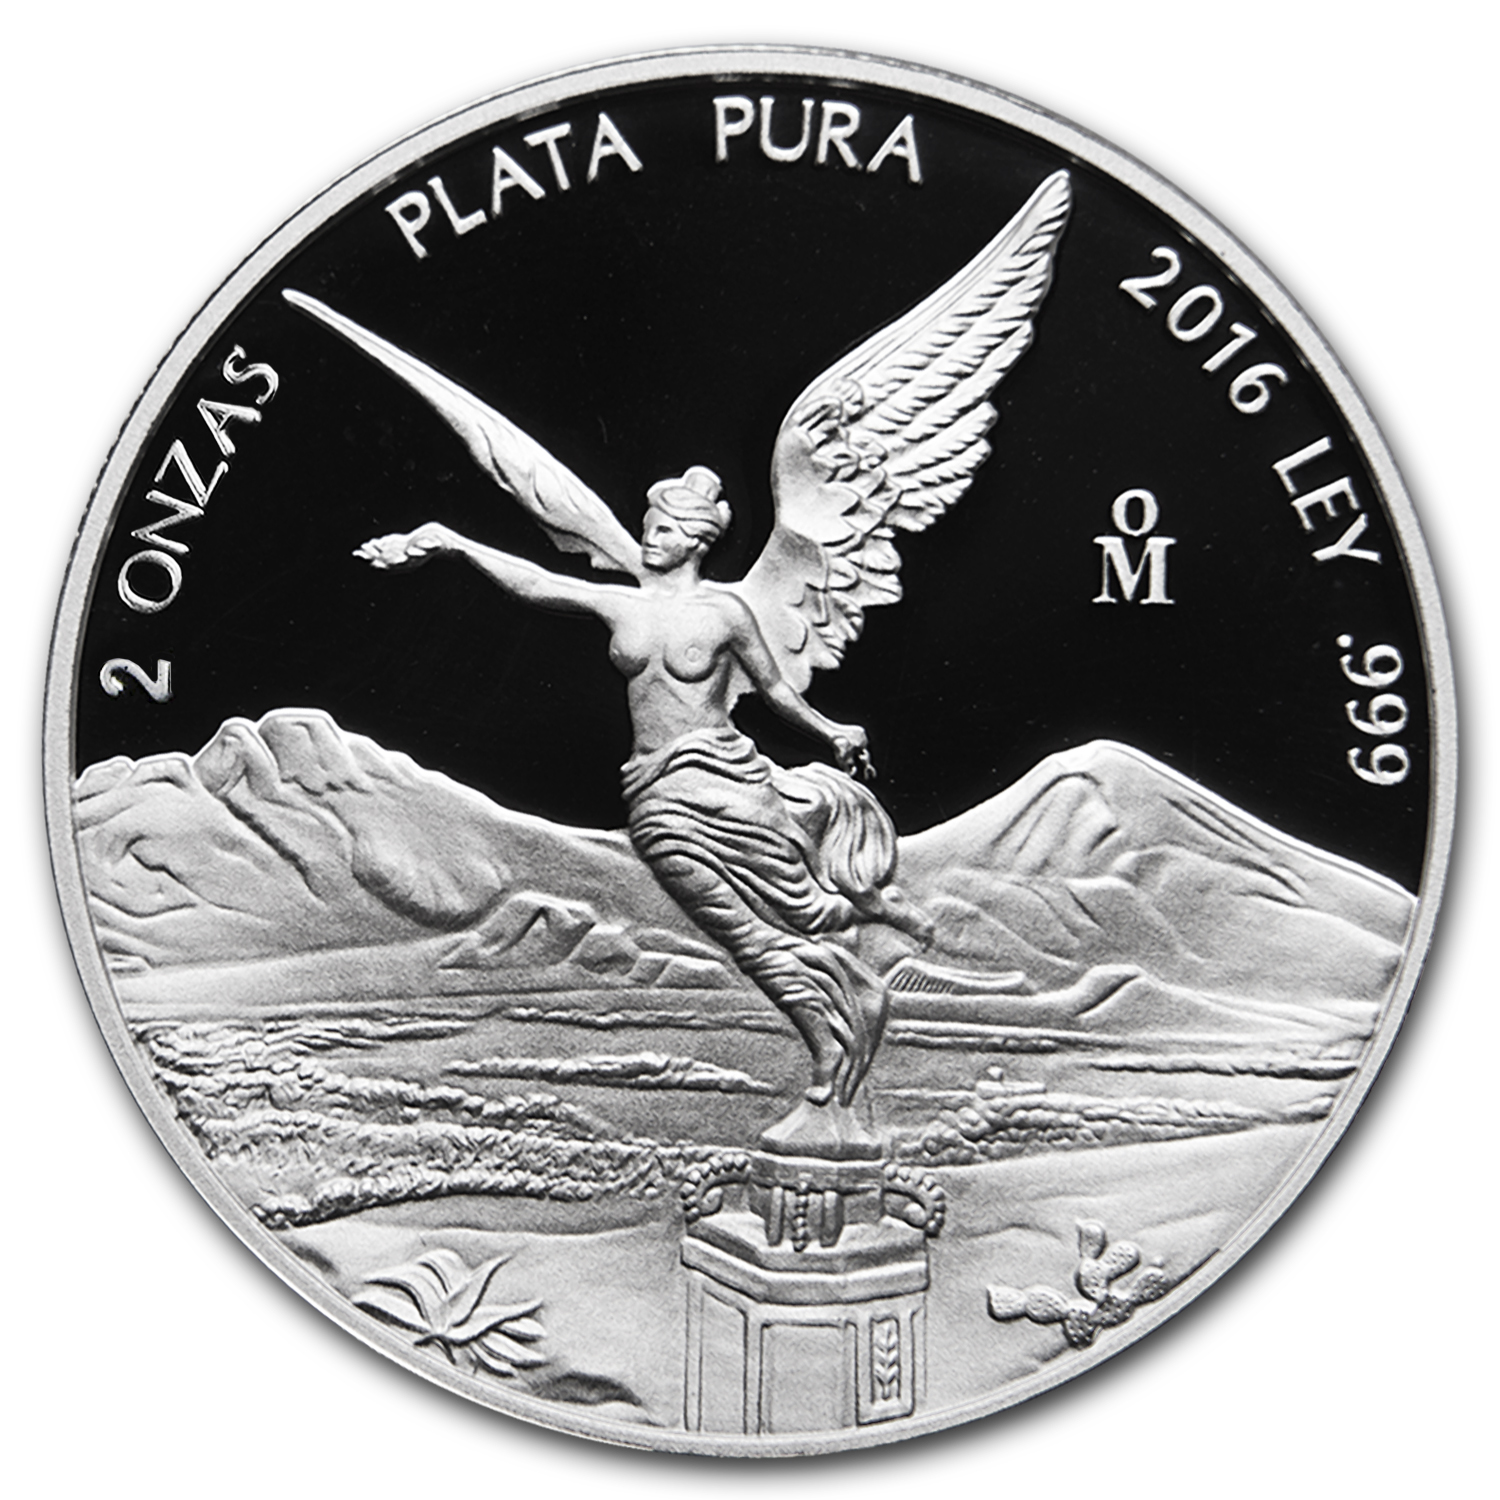 2016 Mexico 2 oz Silver Libertad Proof (In Capsule)